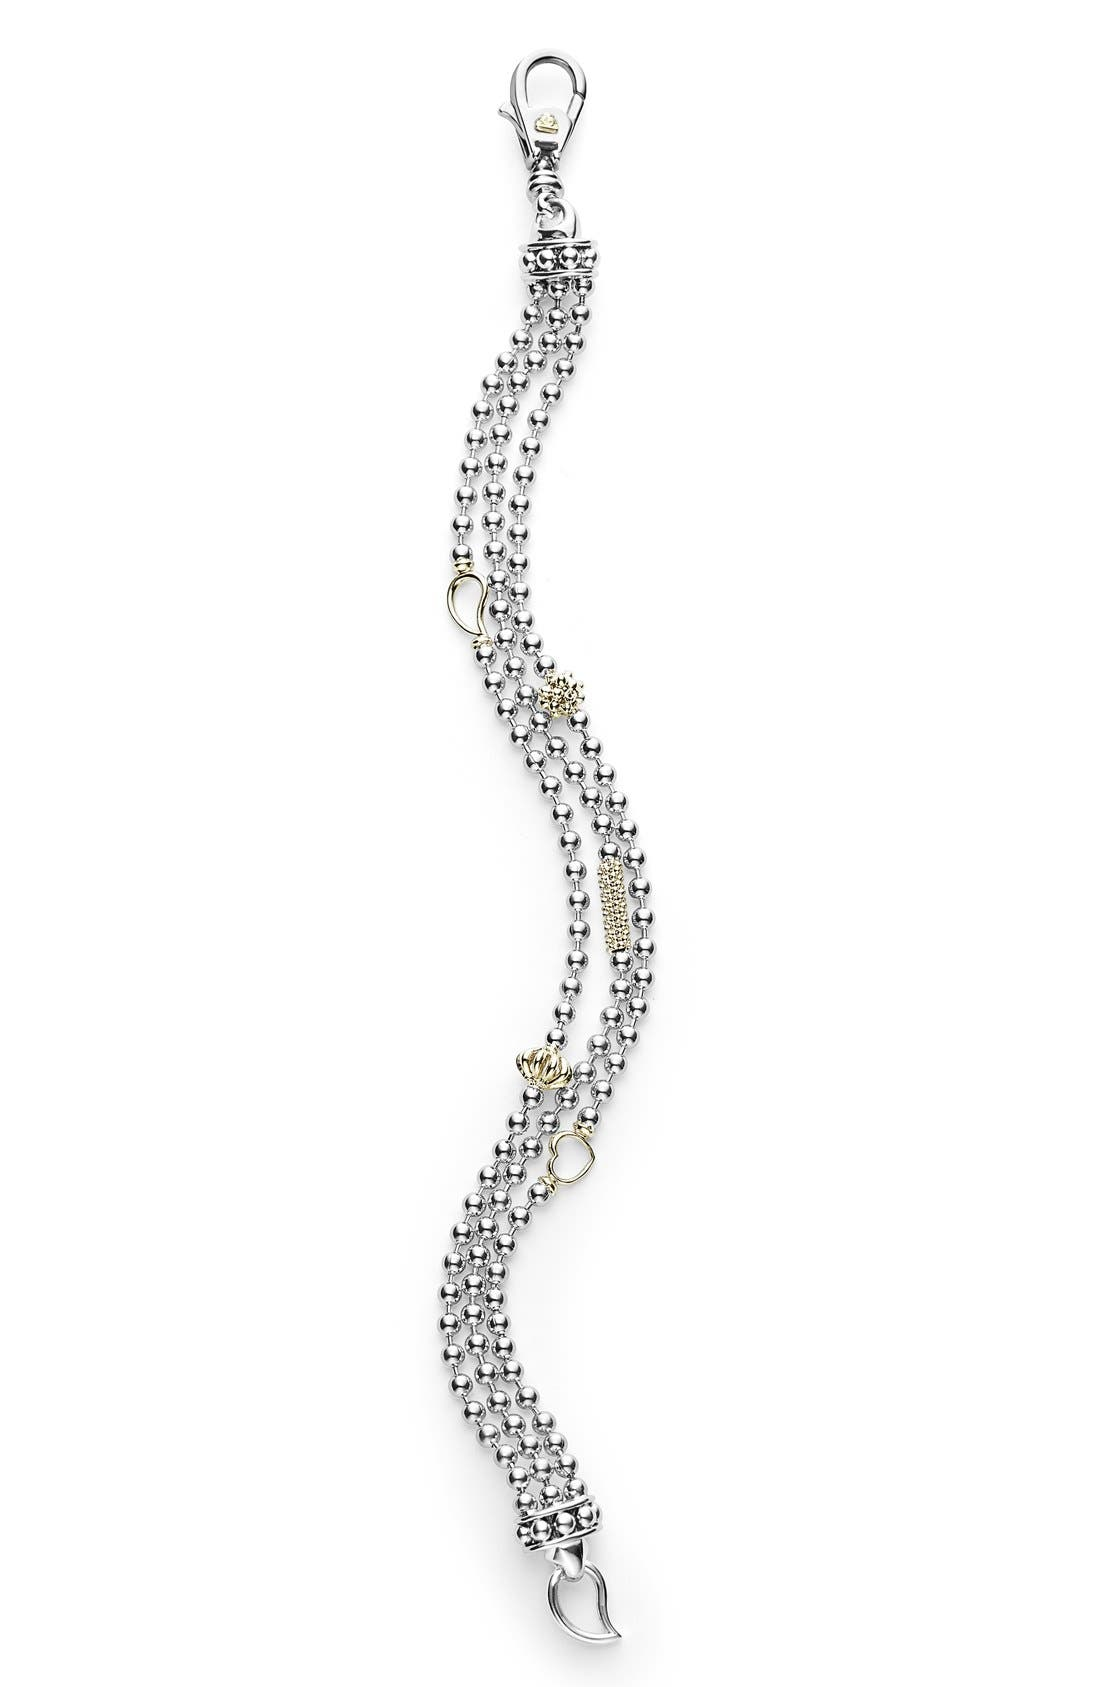 'Caviar Icon' Multistrand Bracelet,                             Alternate thumbnail 4, color,                             040